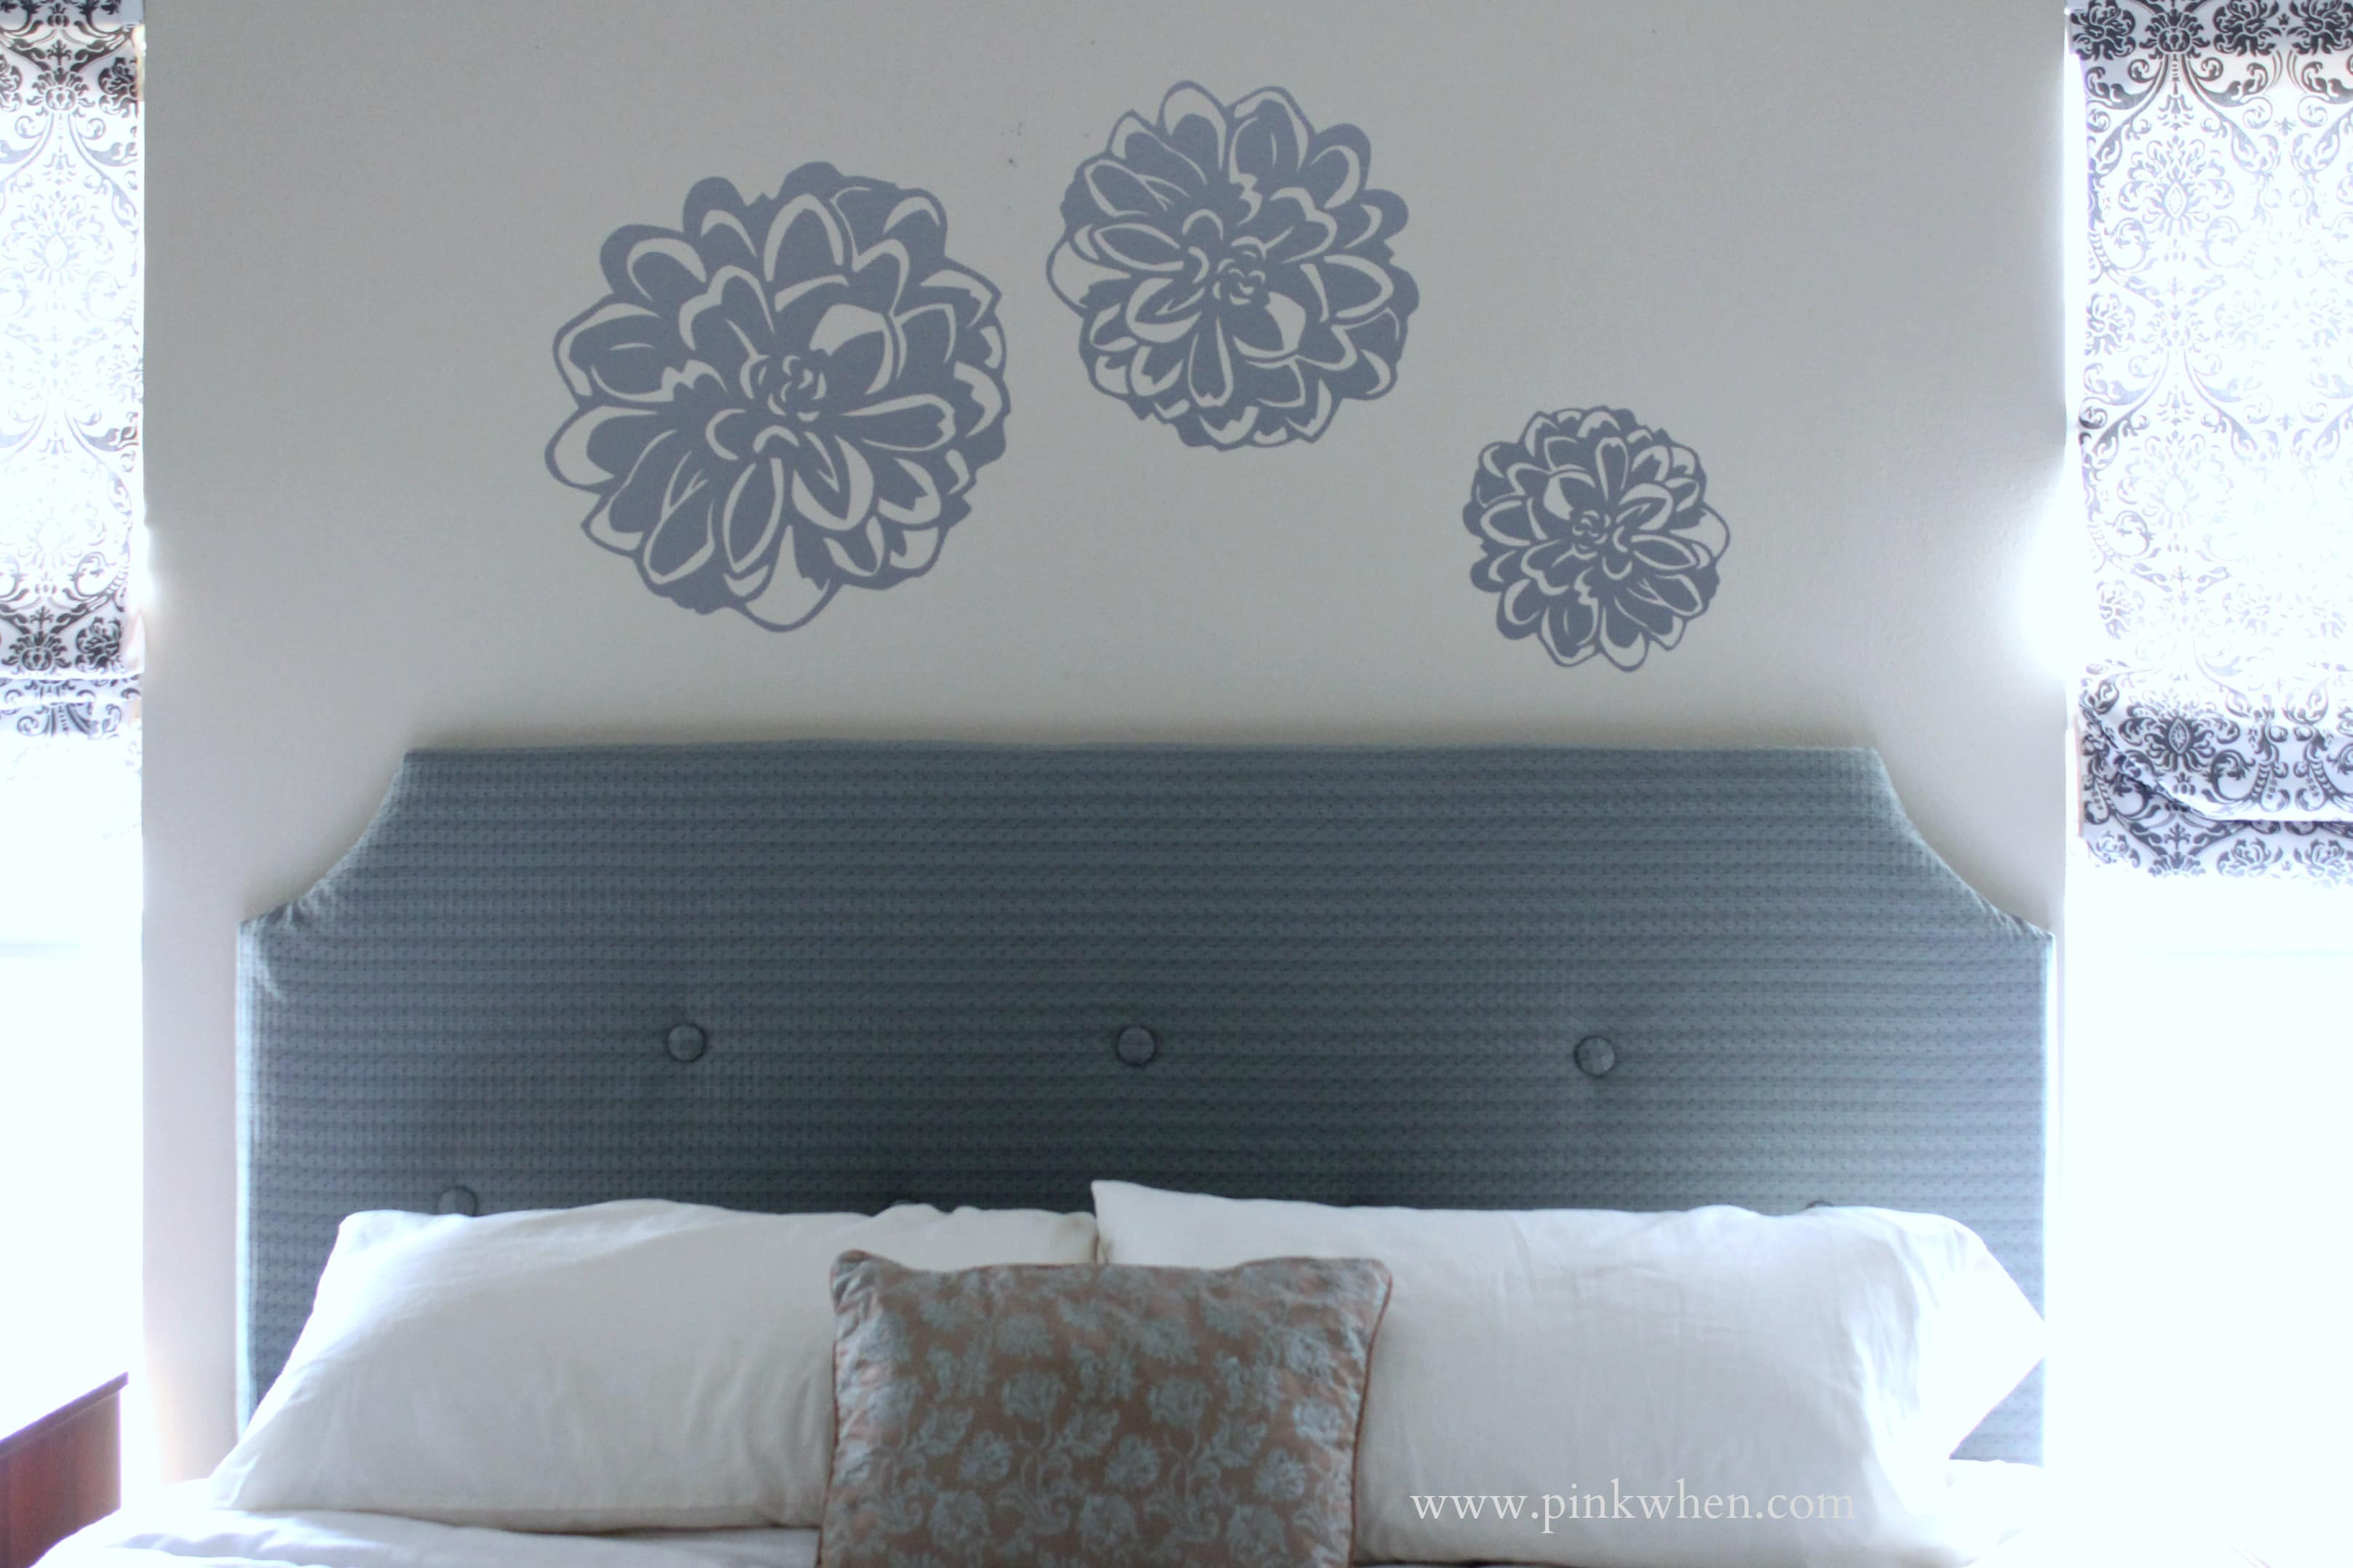 DIY Tufted Headboard for under $100 via PinkWhen.com 1